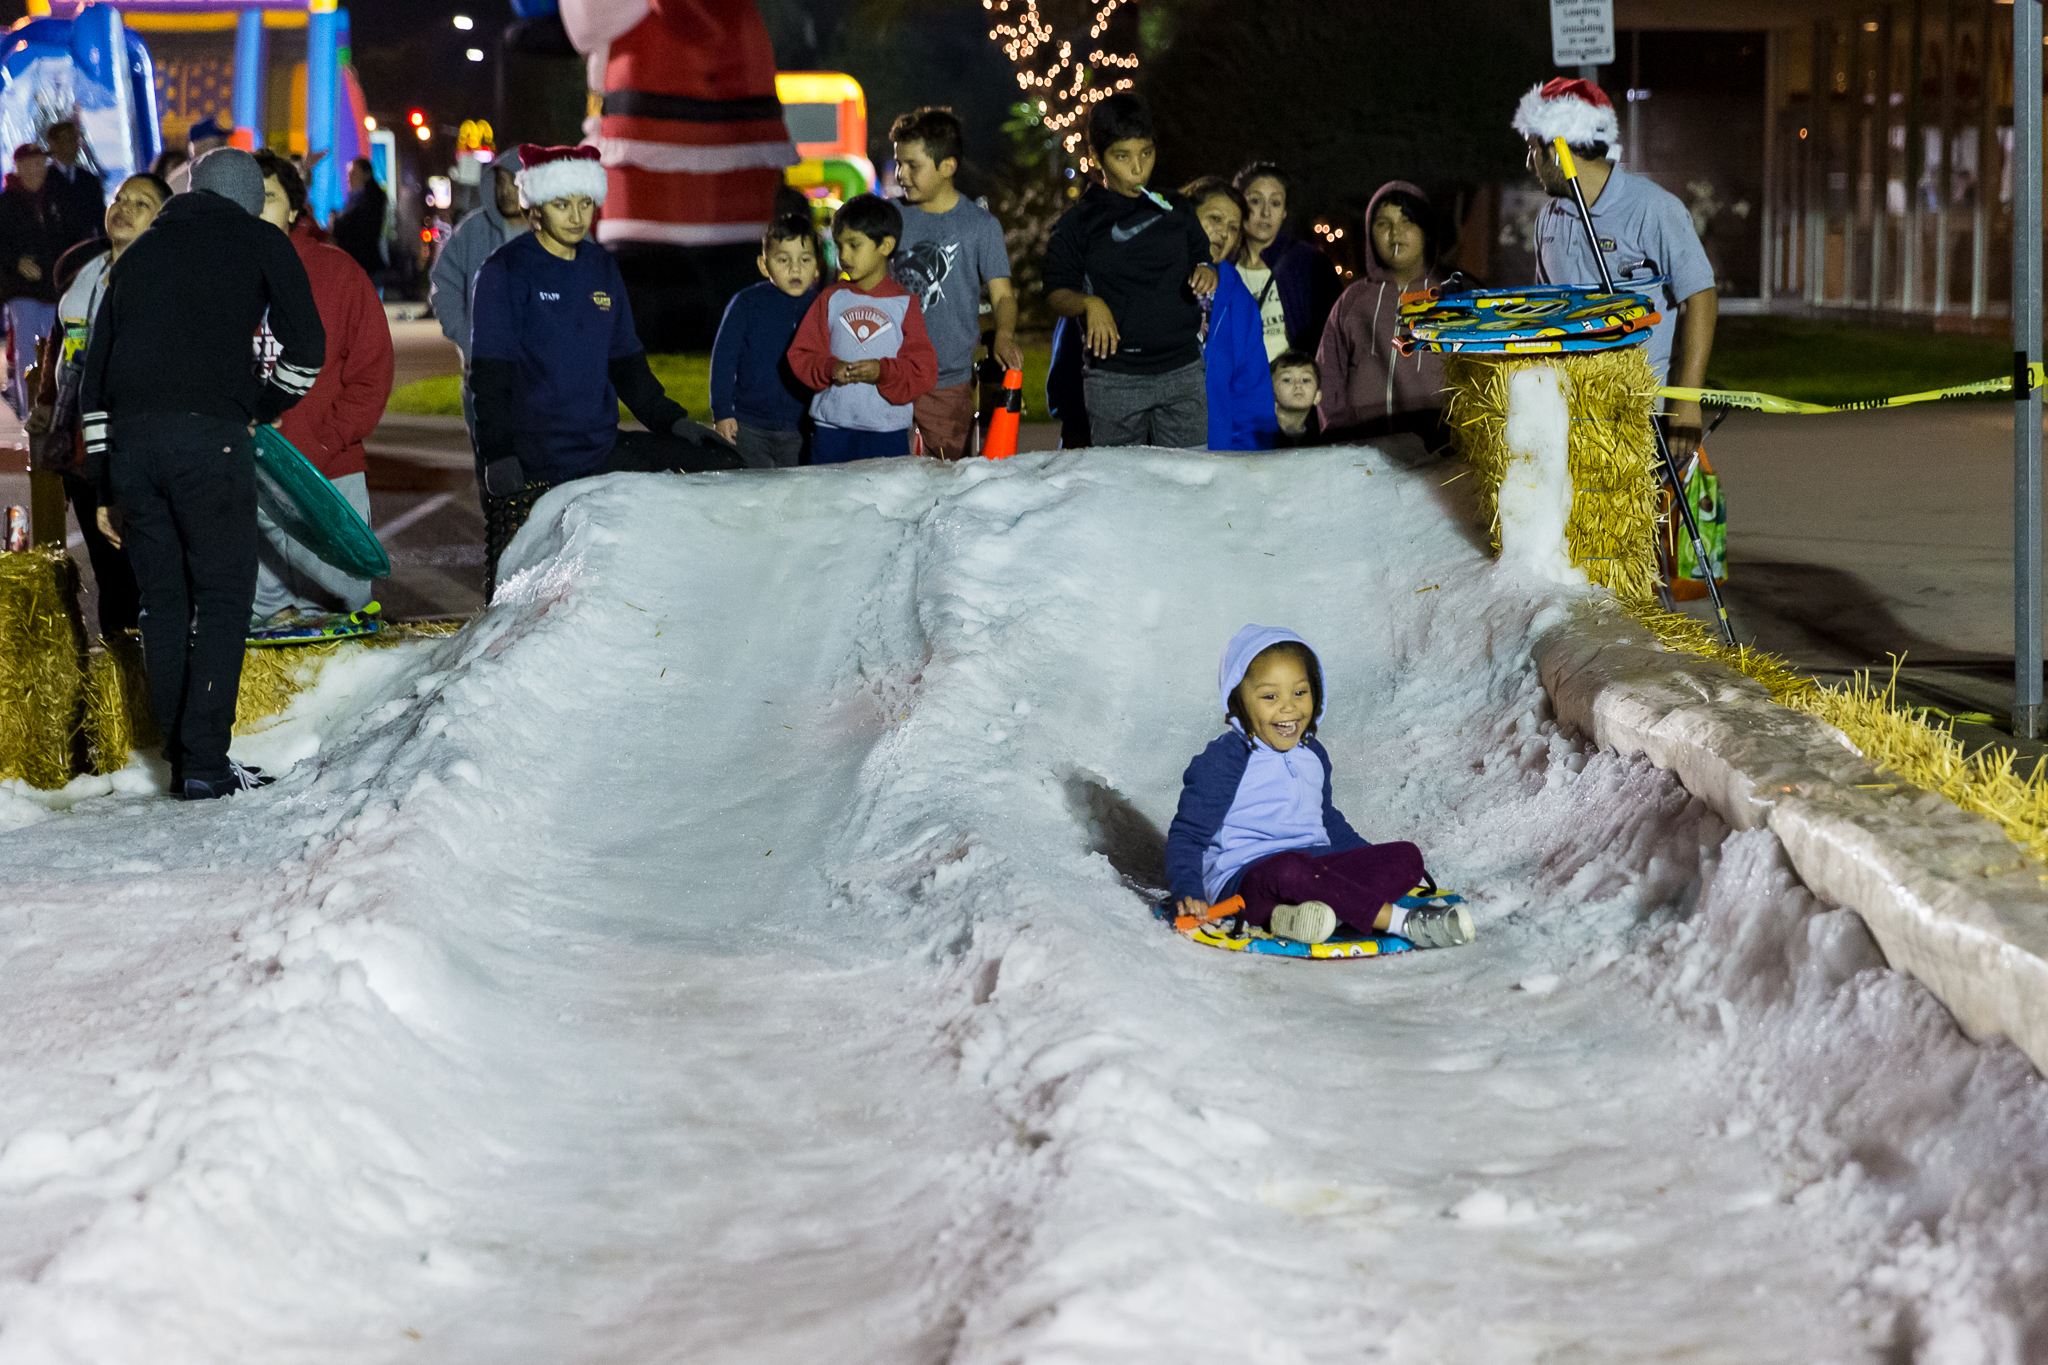 Snow pan slide